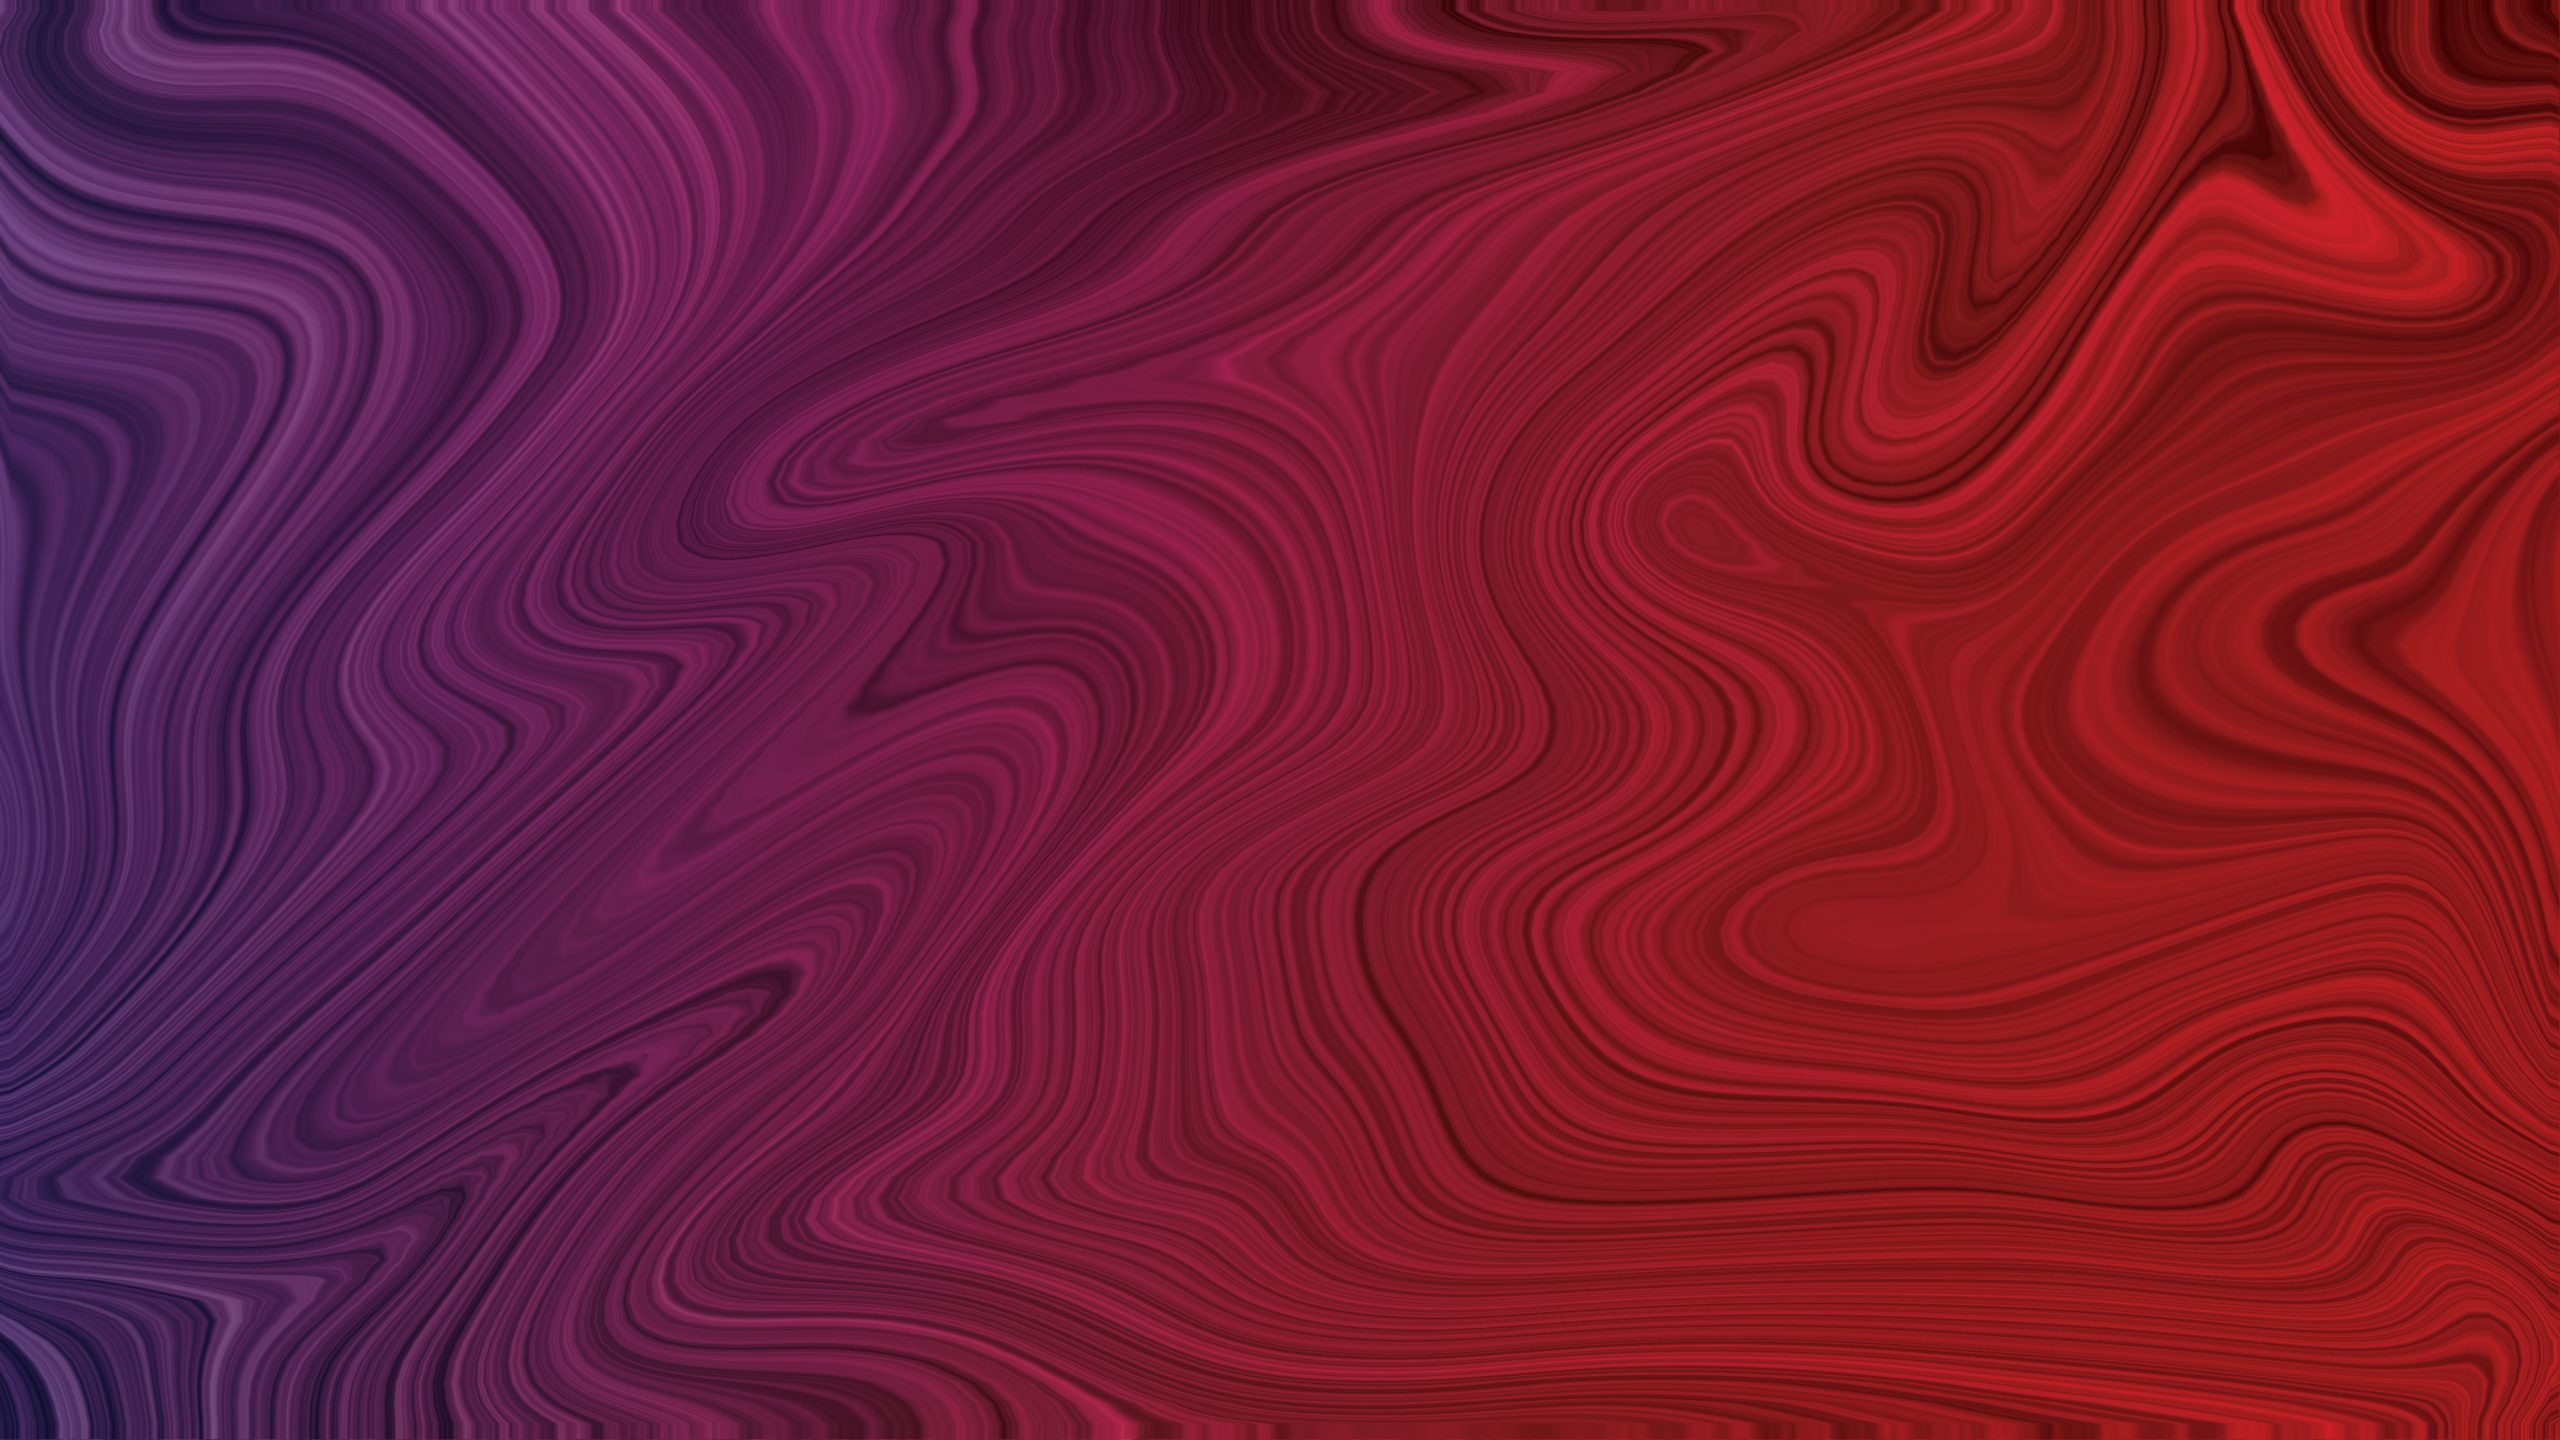 Red liquid abstract wallpaper